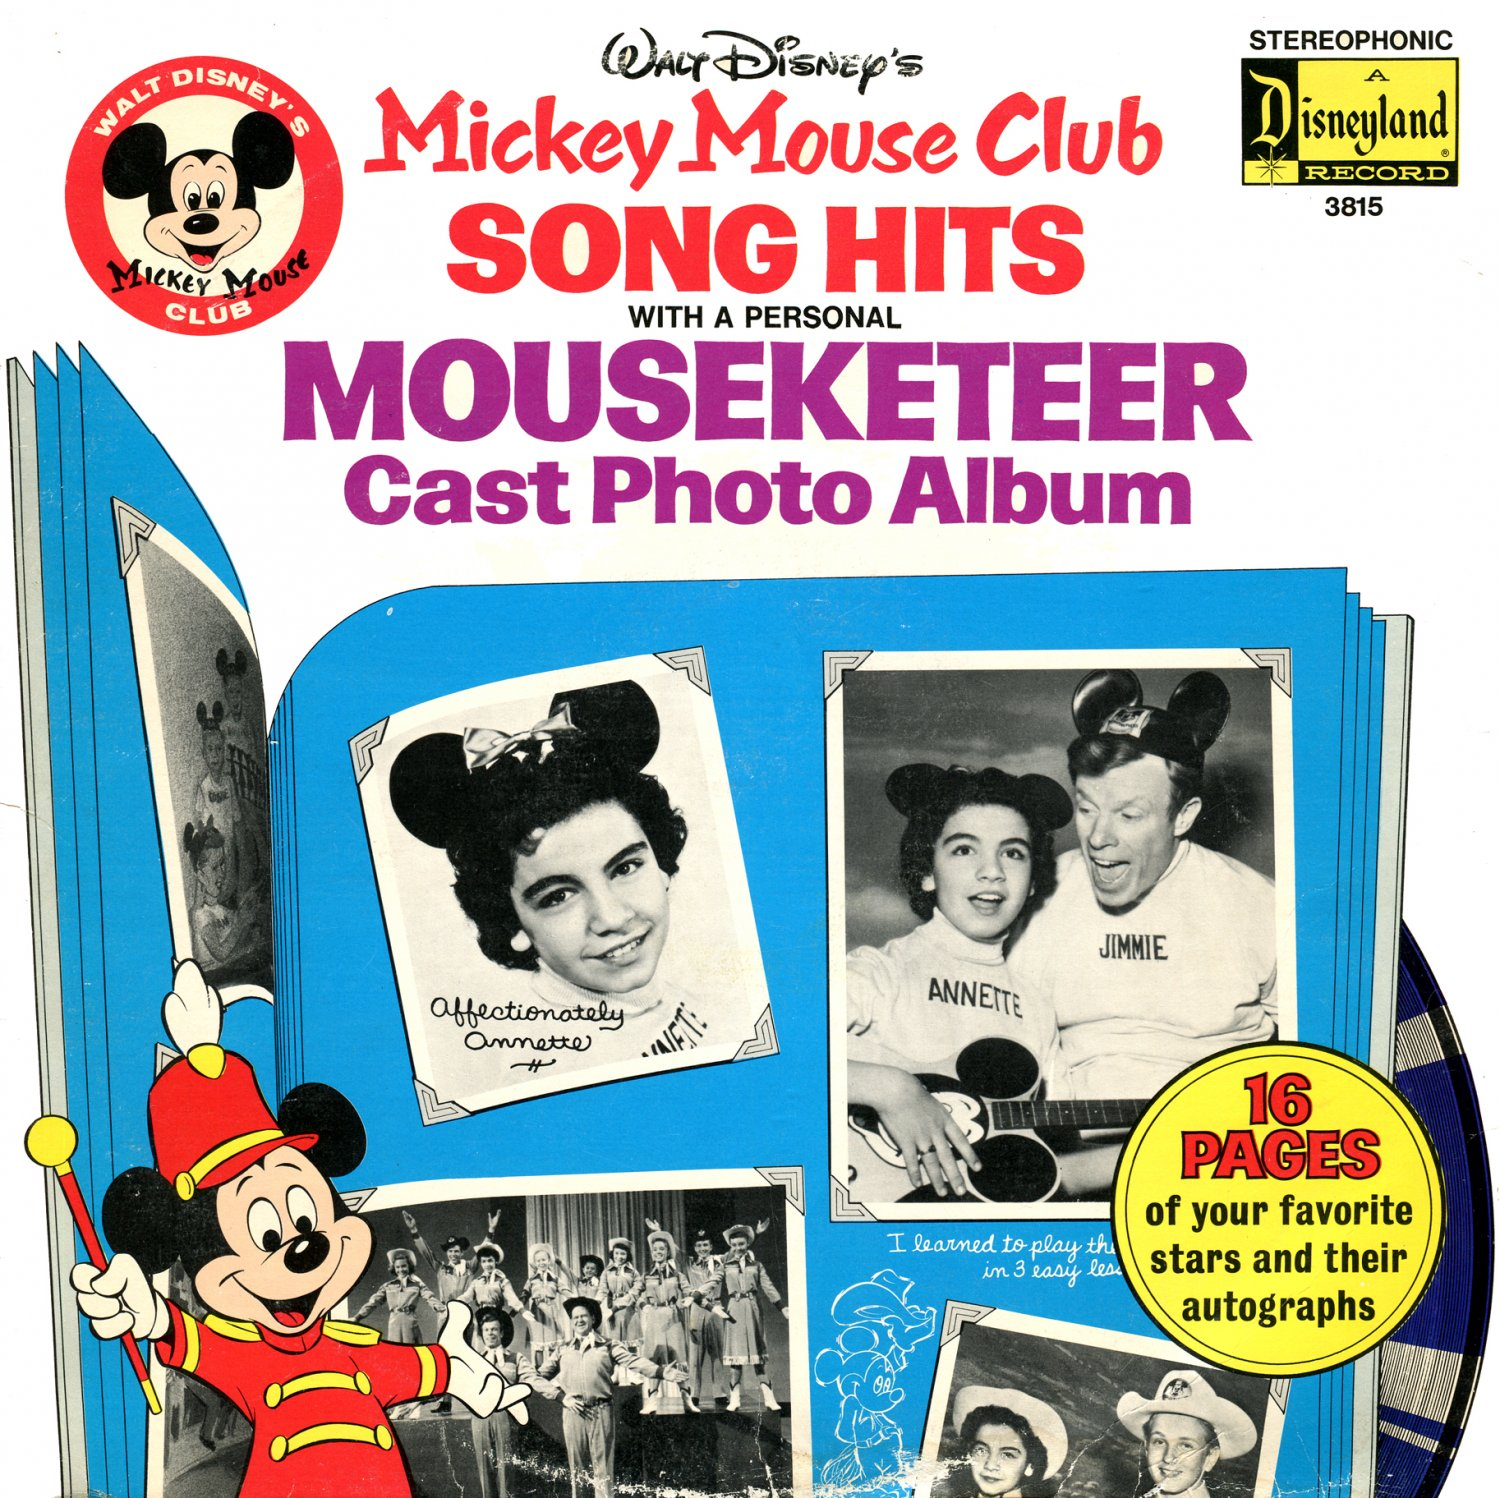 Mickey Mouse Club Song Hits Walt Disney Soundtrack Mouseketeer